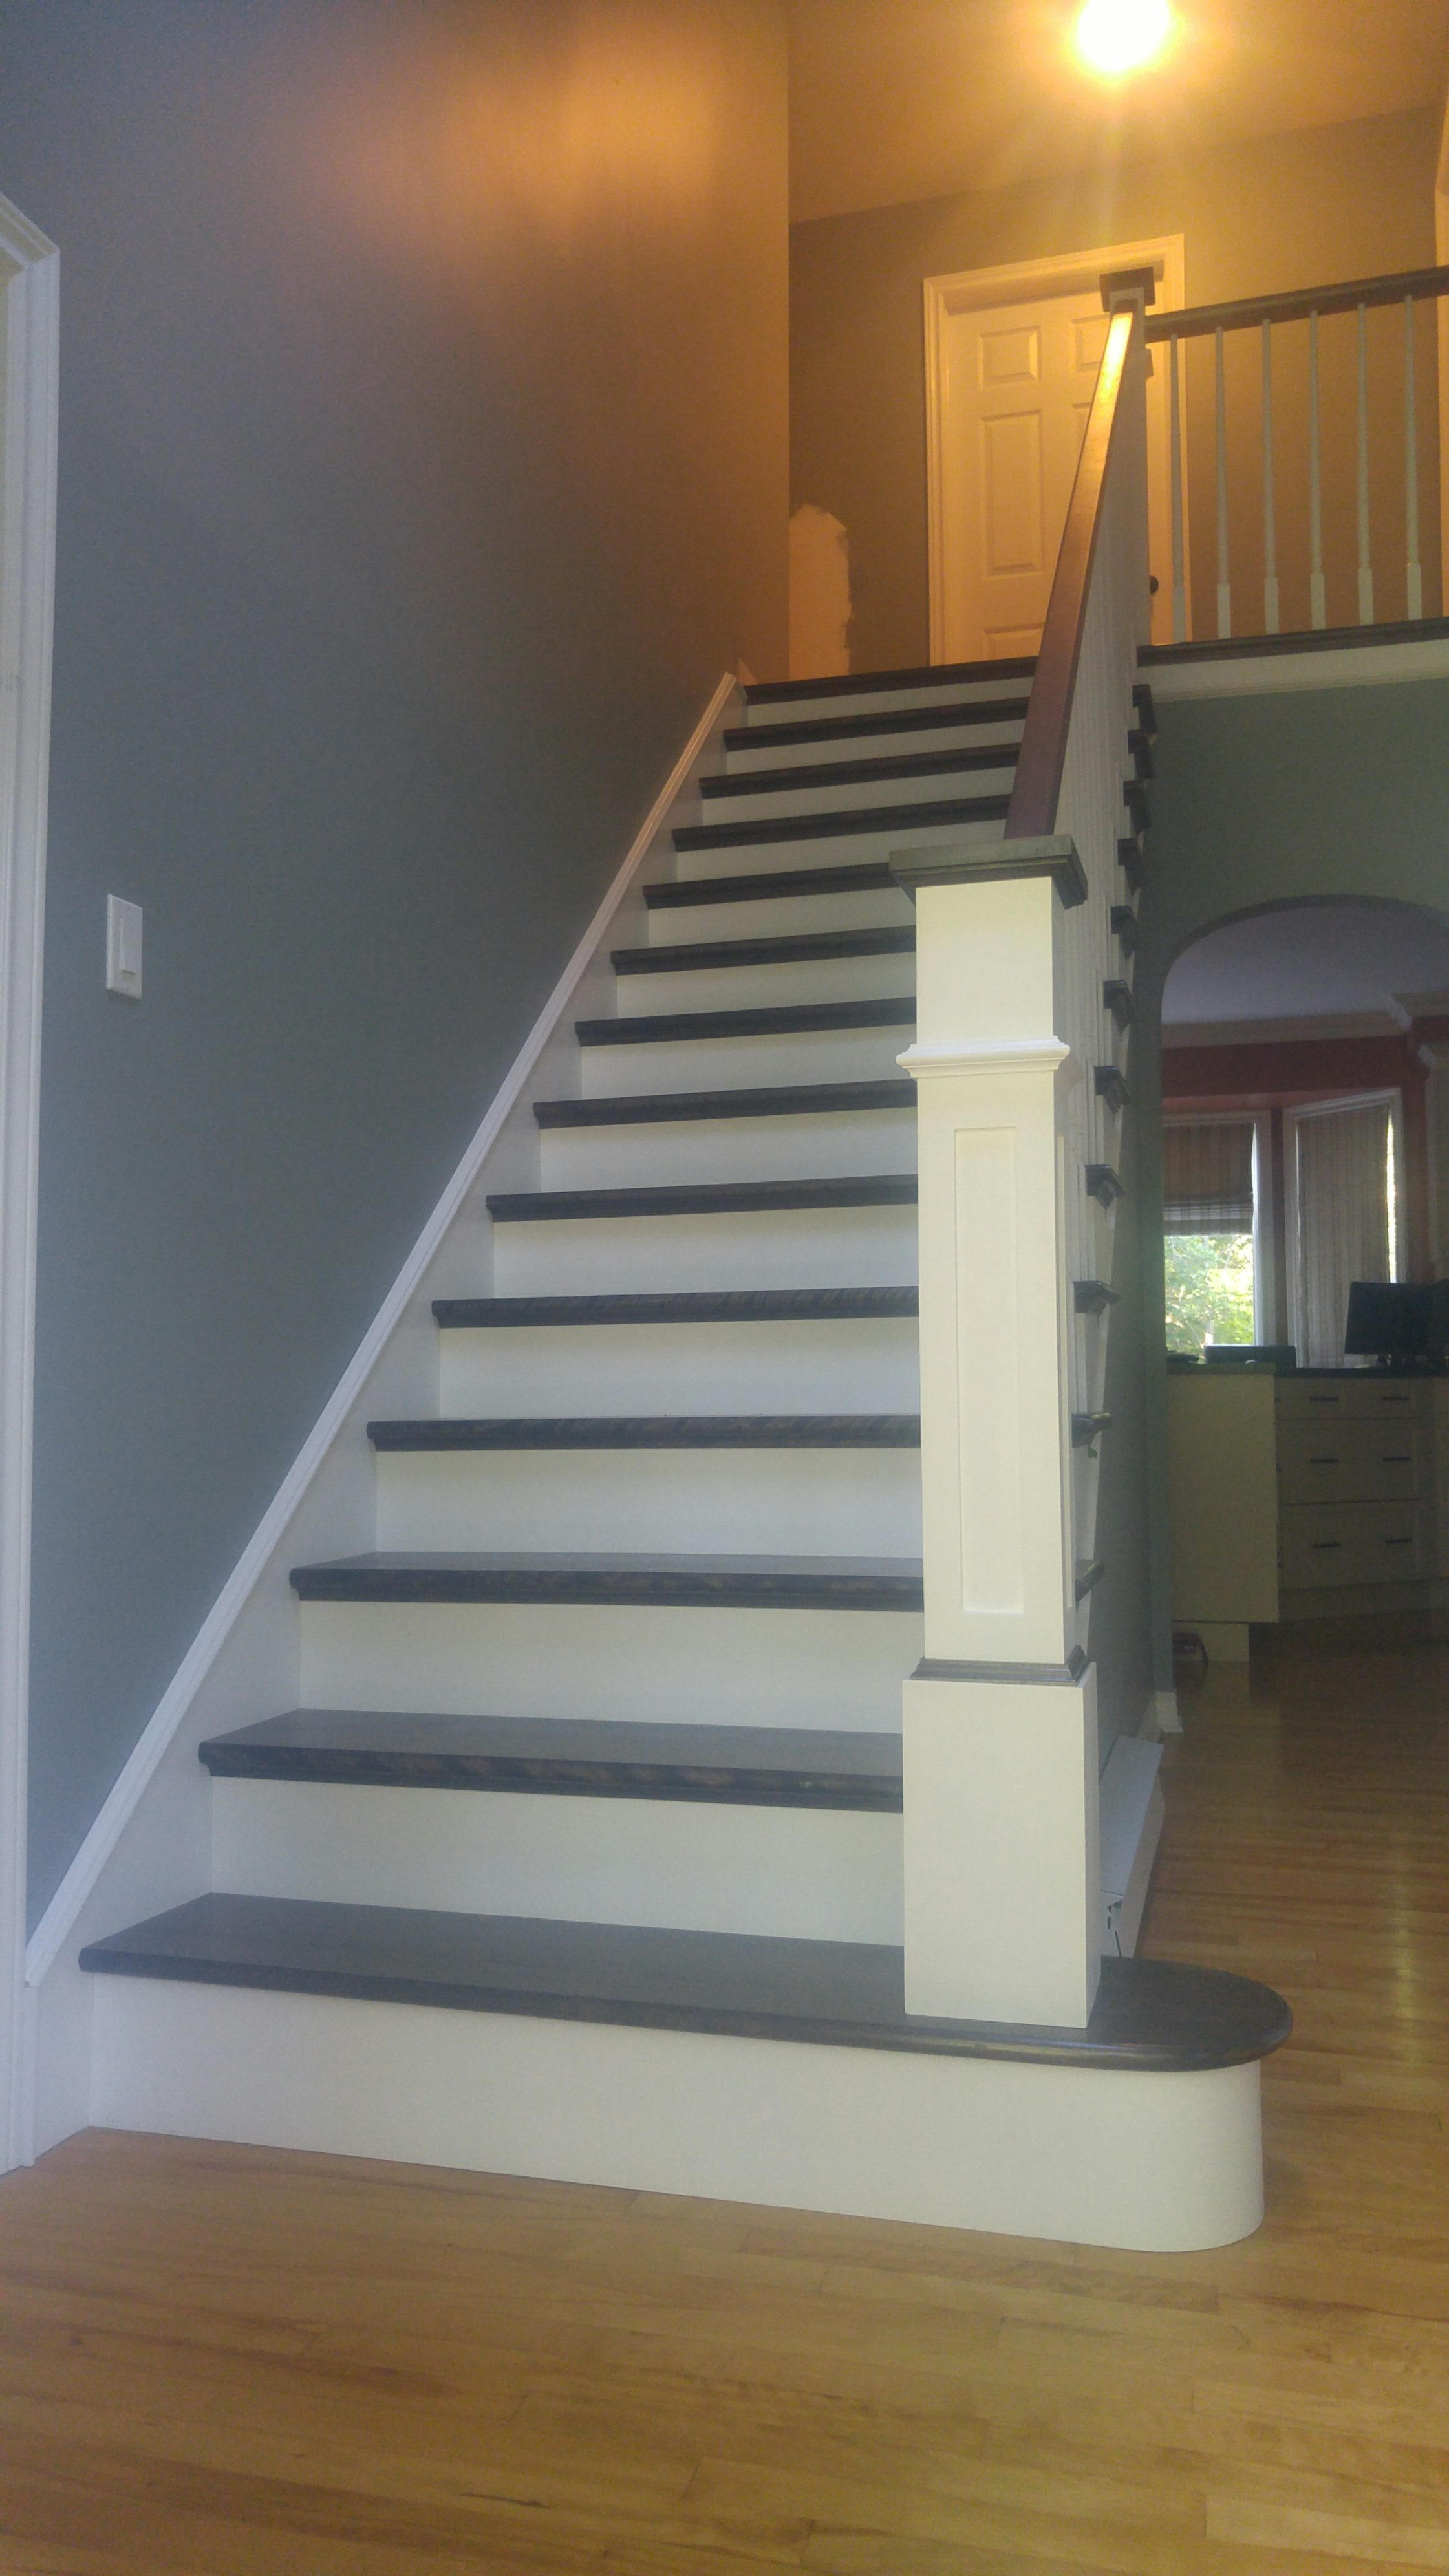 Breathing Life Into An Older Staircase Scotia Stairs Ltd